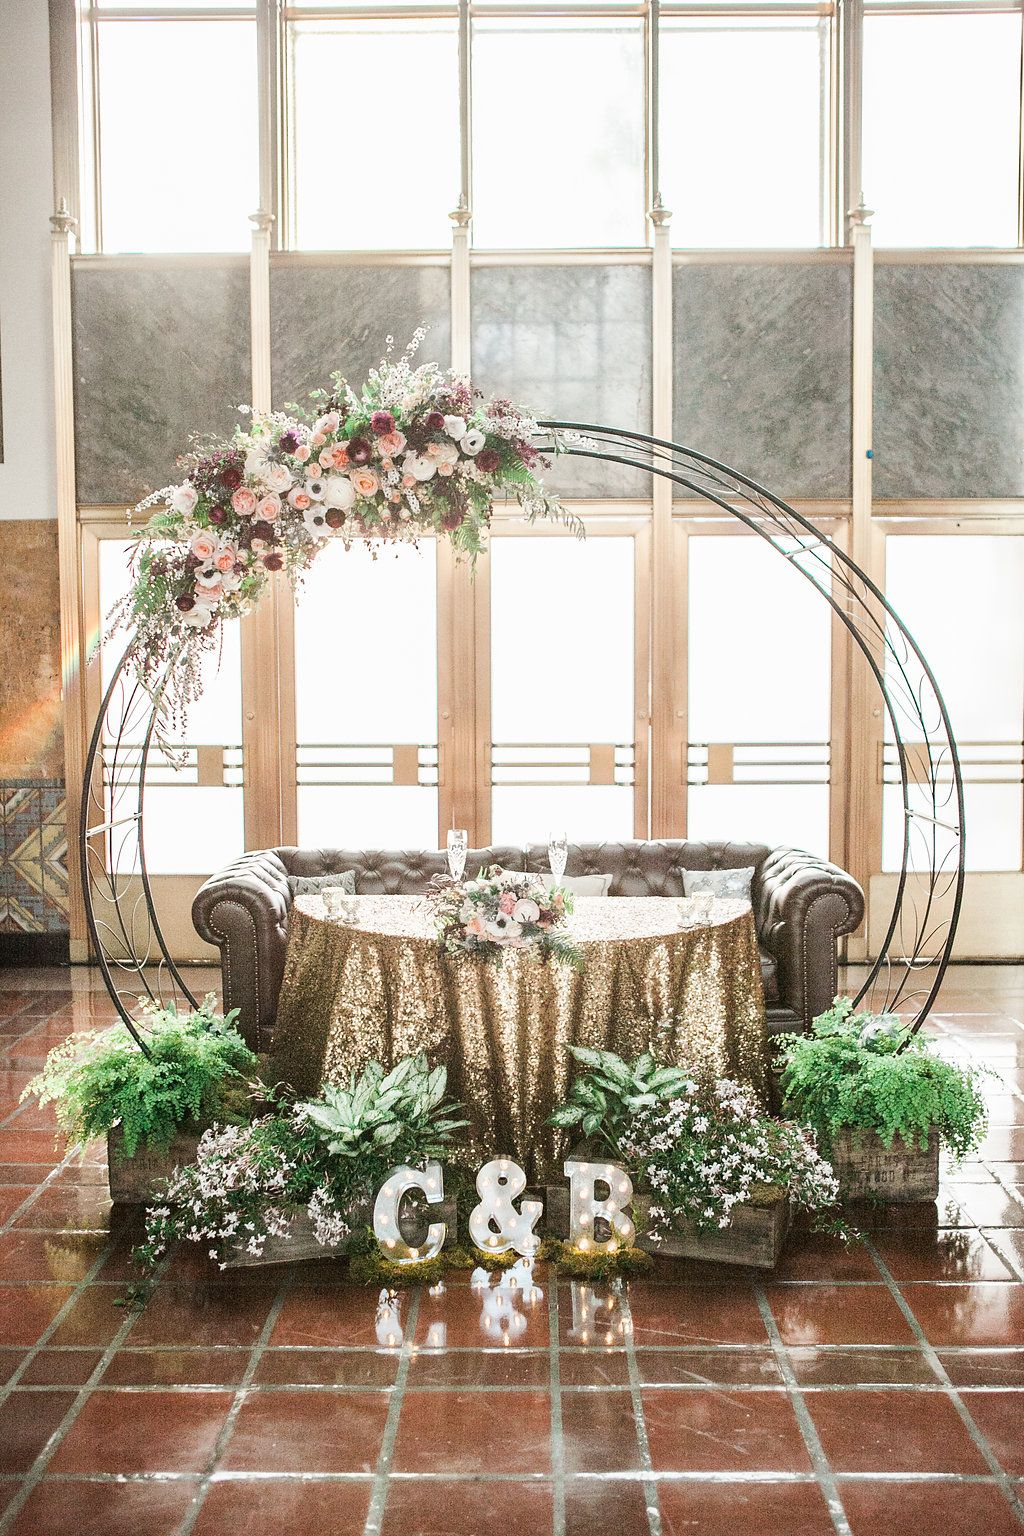 Circular Wedding Arch Re-purposed for sweetheart table ...